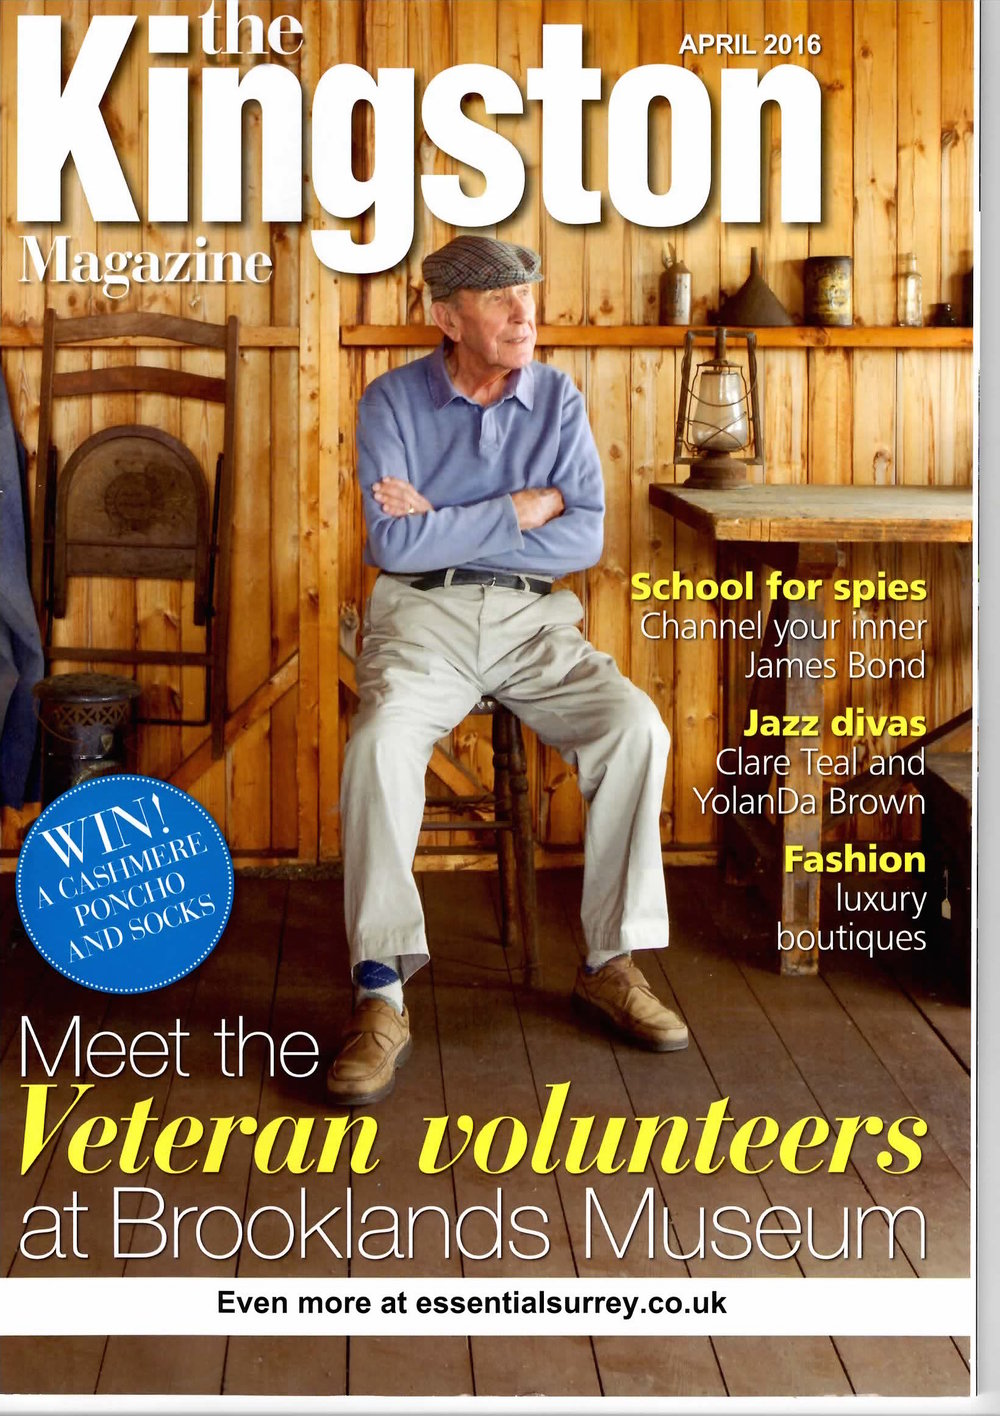 Volunteer on the front cover of The Kingston magazine